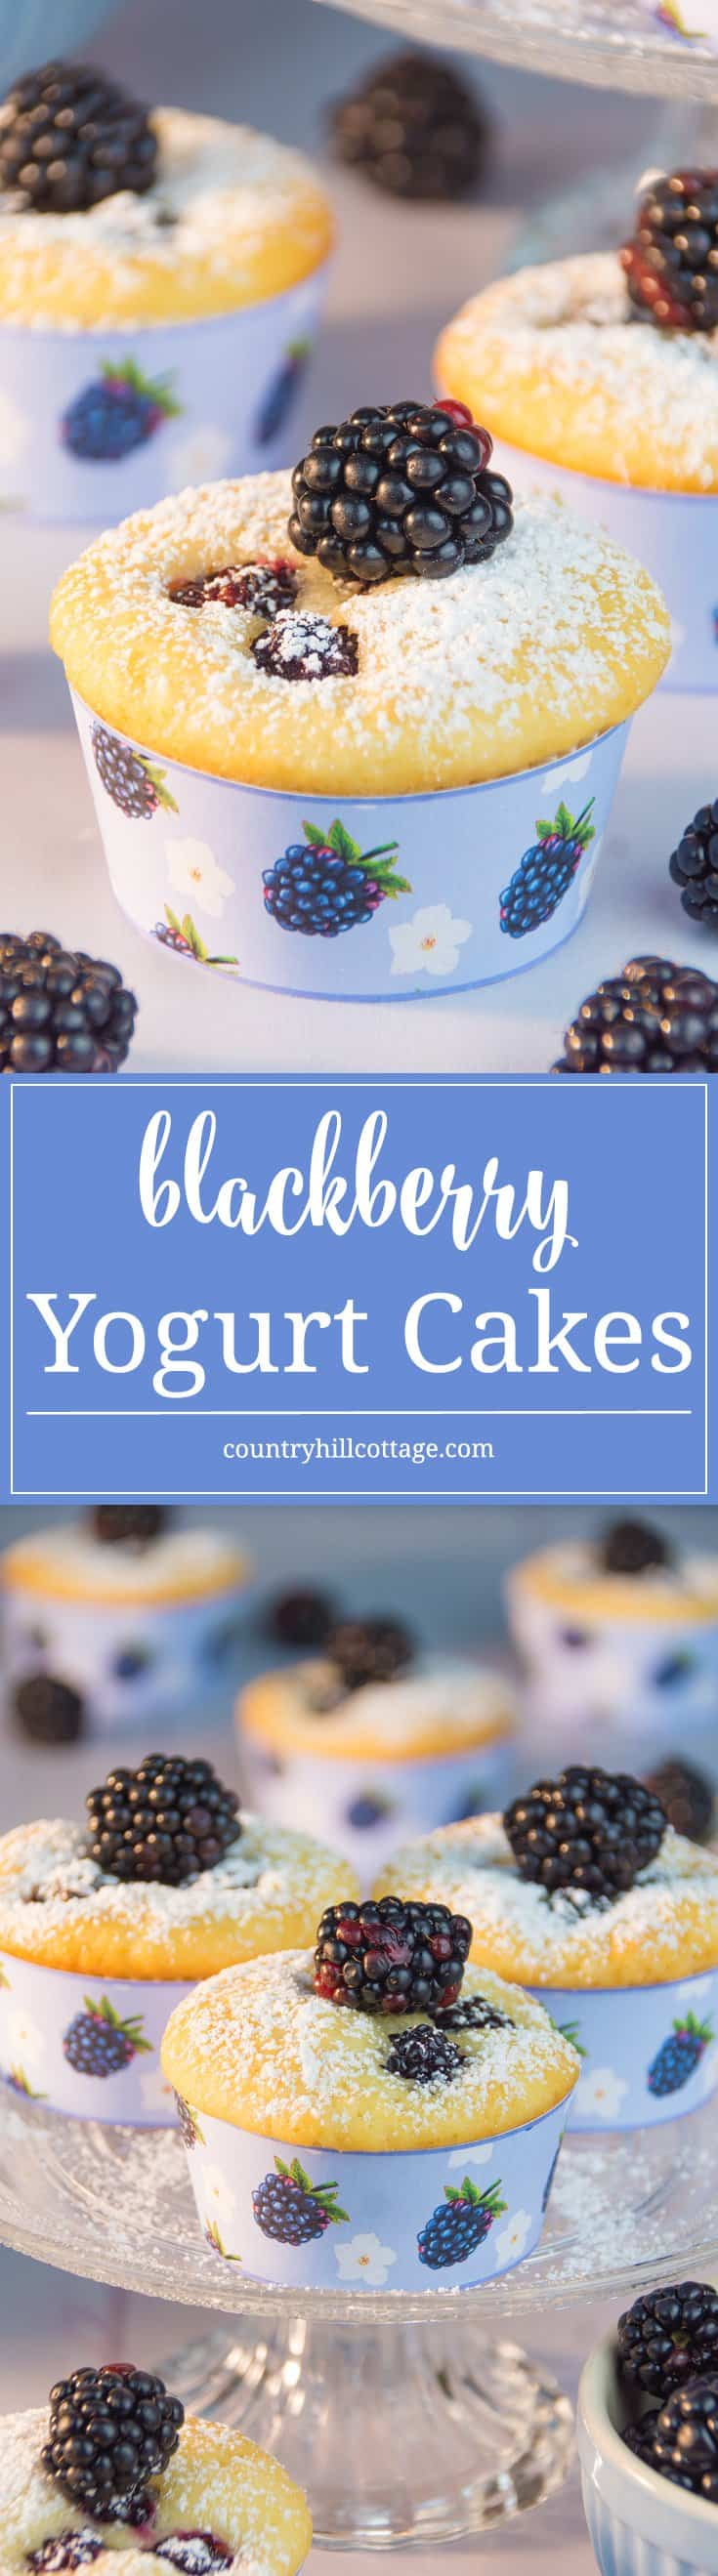 Delicious Blackberry Yogurt Cakes with cute printables wrappers! #blackberries #yogurt #muffins | countryhillcottage.com